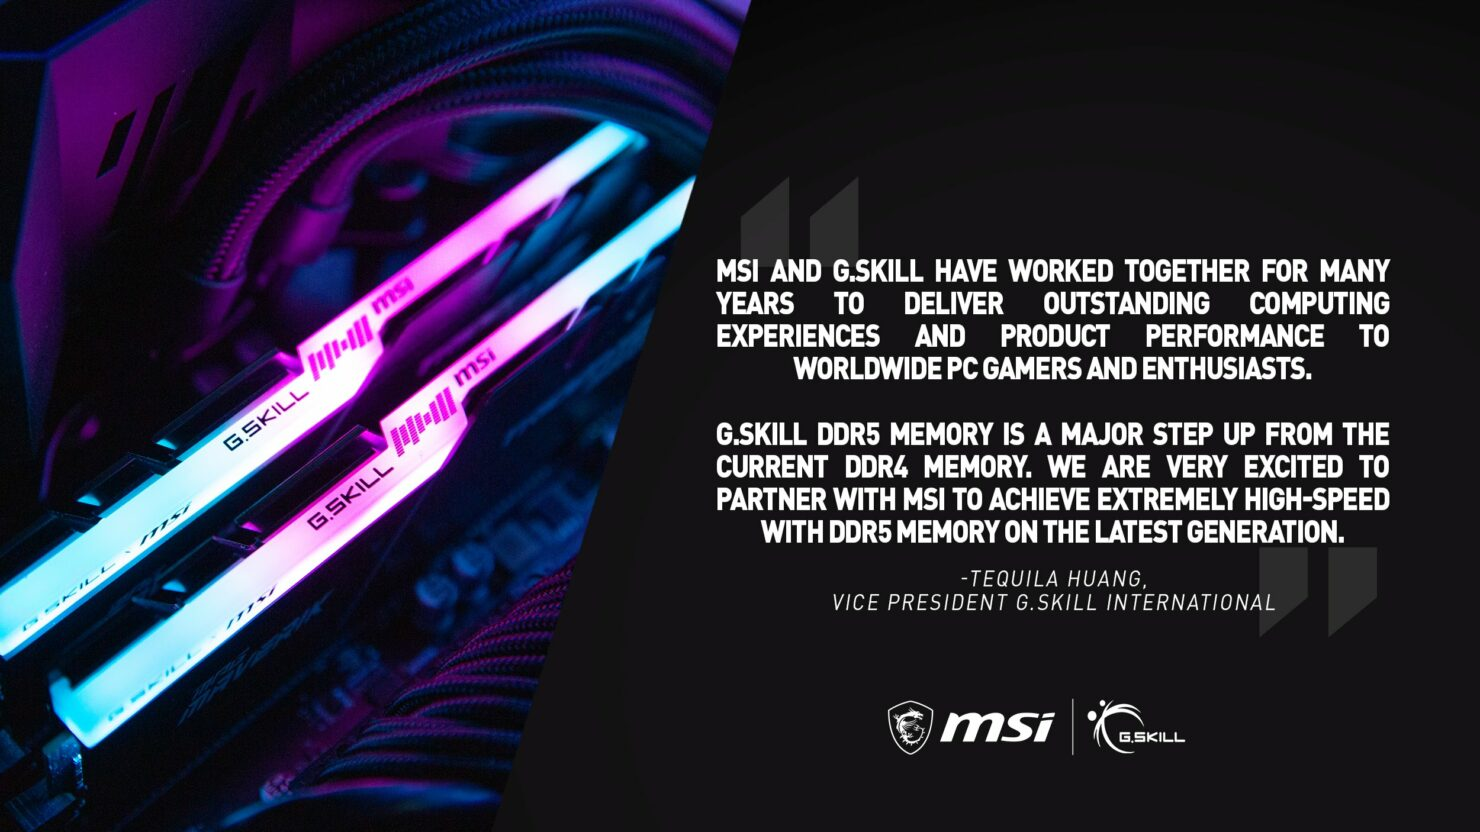 msi-ddr5-memory-boost-technology-_3